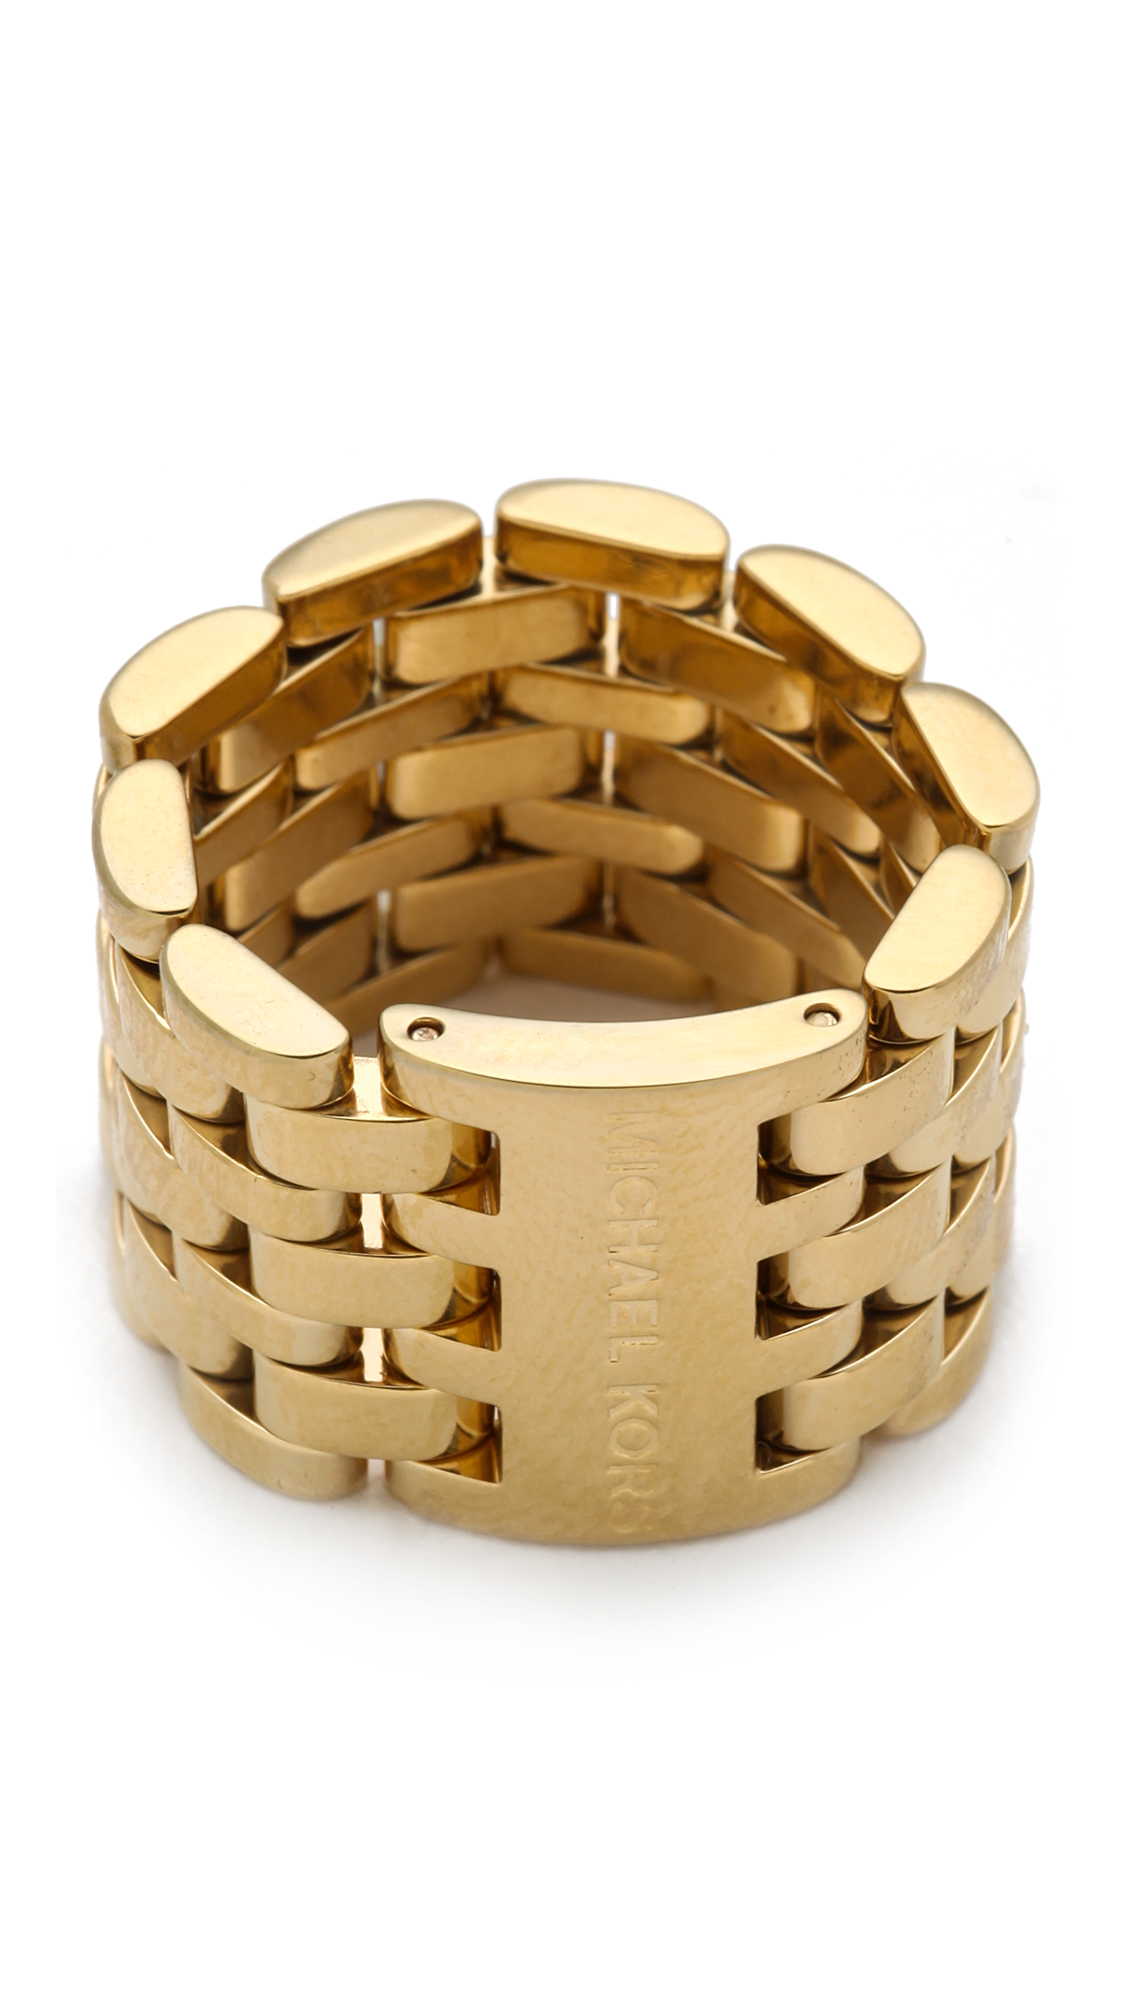 Michael Kors Watch Link Ring in Gold